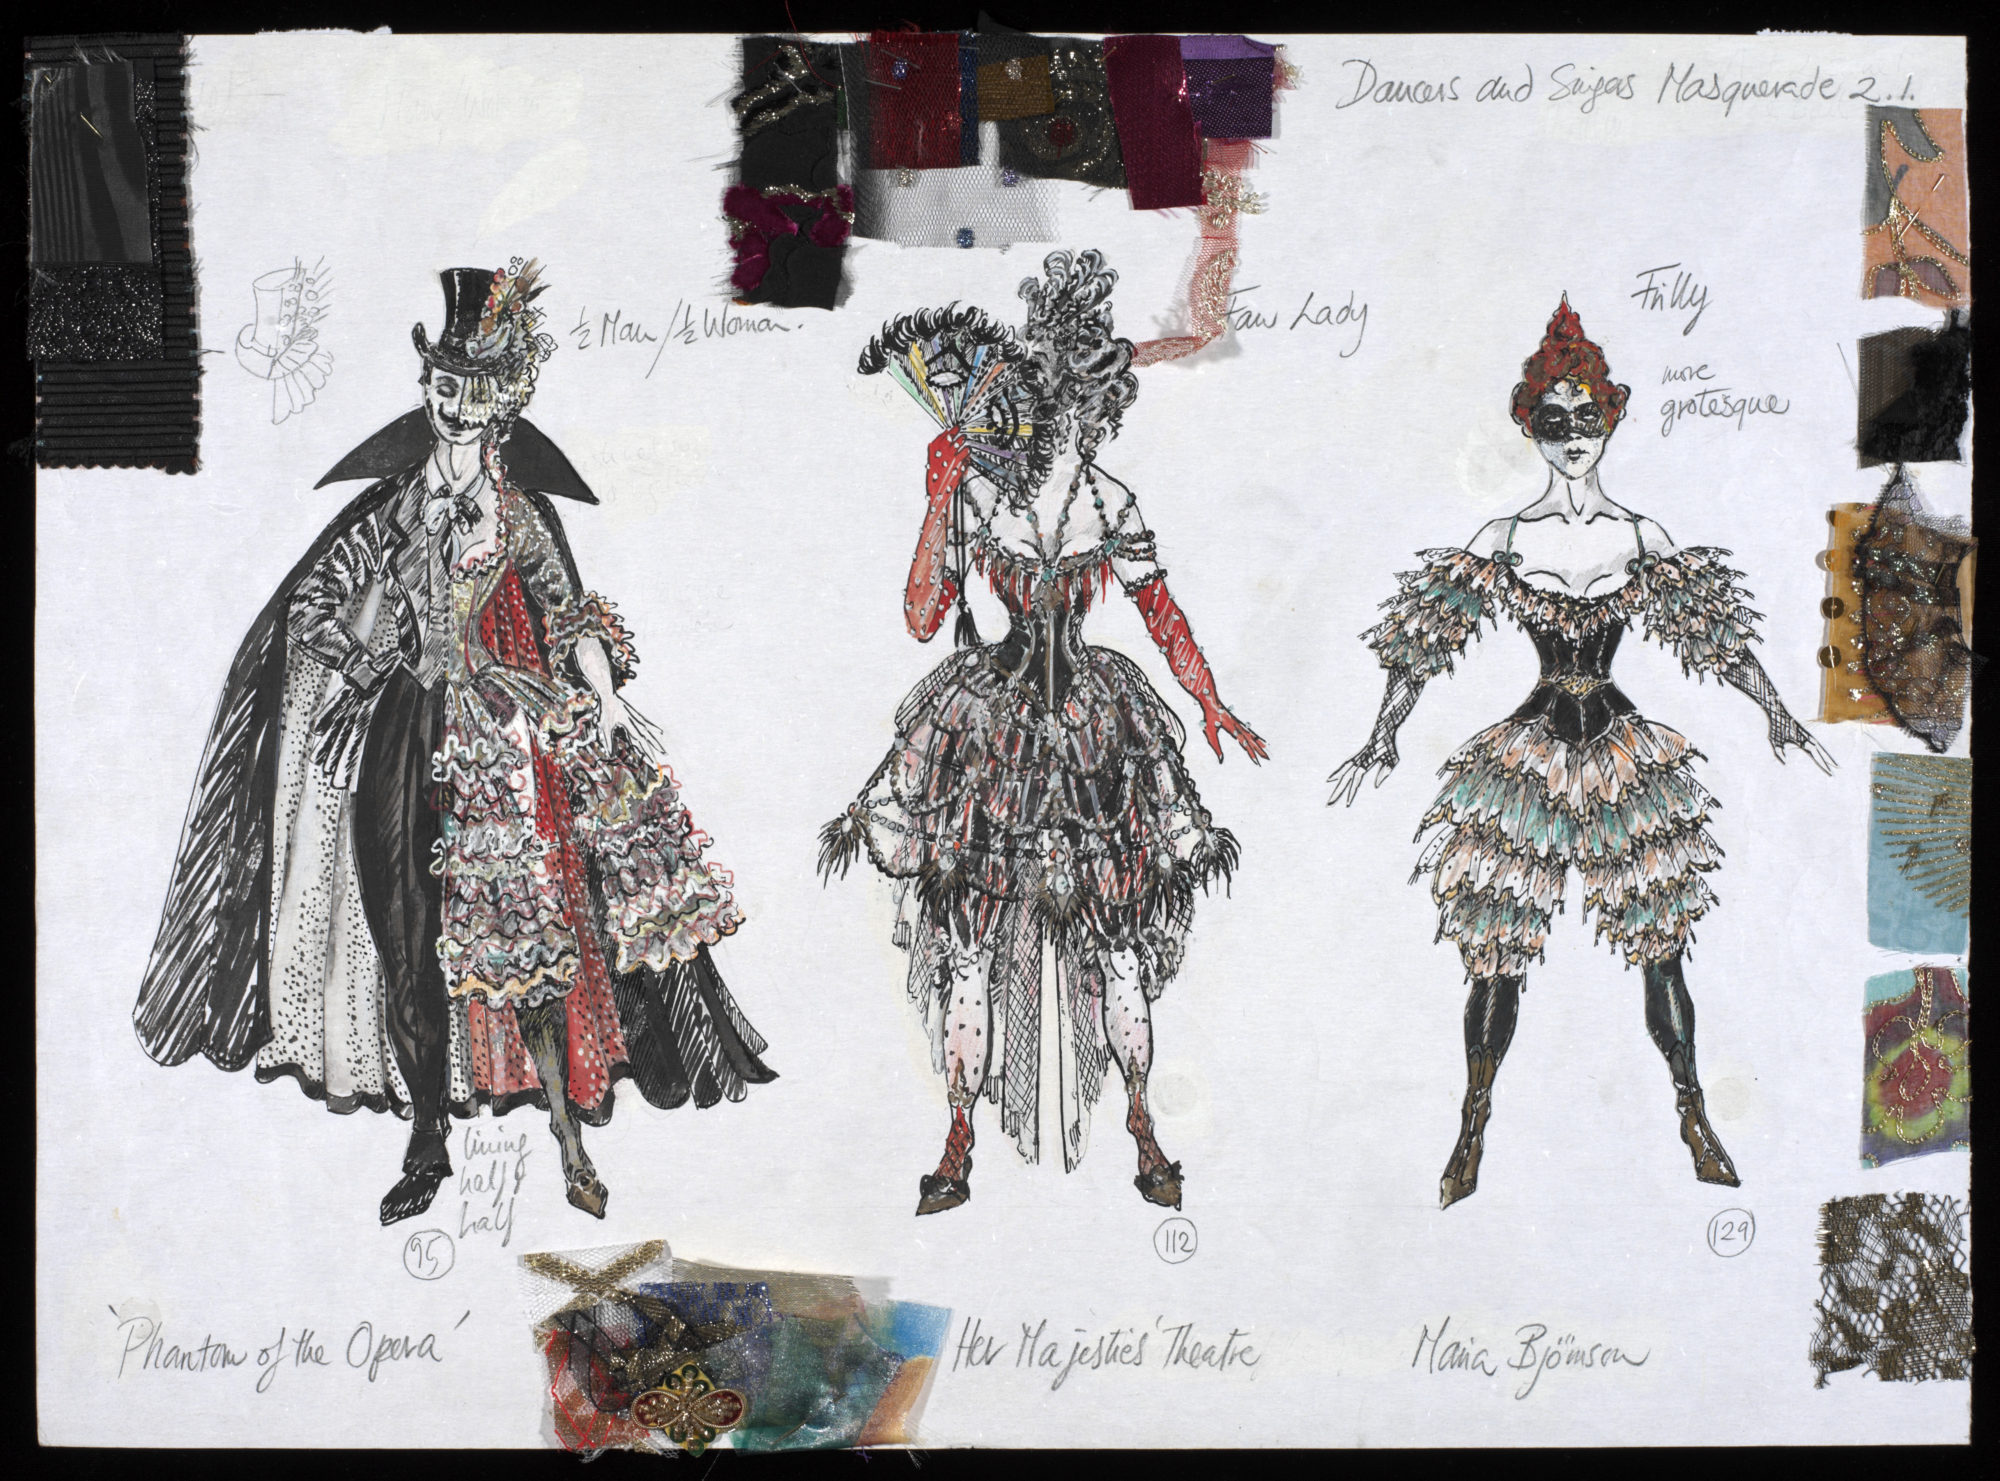 Costume Design for three dancers and singers in The Phantom of the Opera, the Masquerade Scene, 1986 Designed by Maria Björnson With the permission of the Maria Björnson Archive